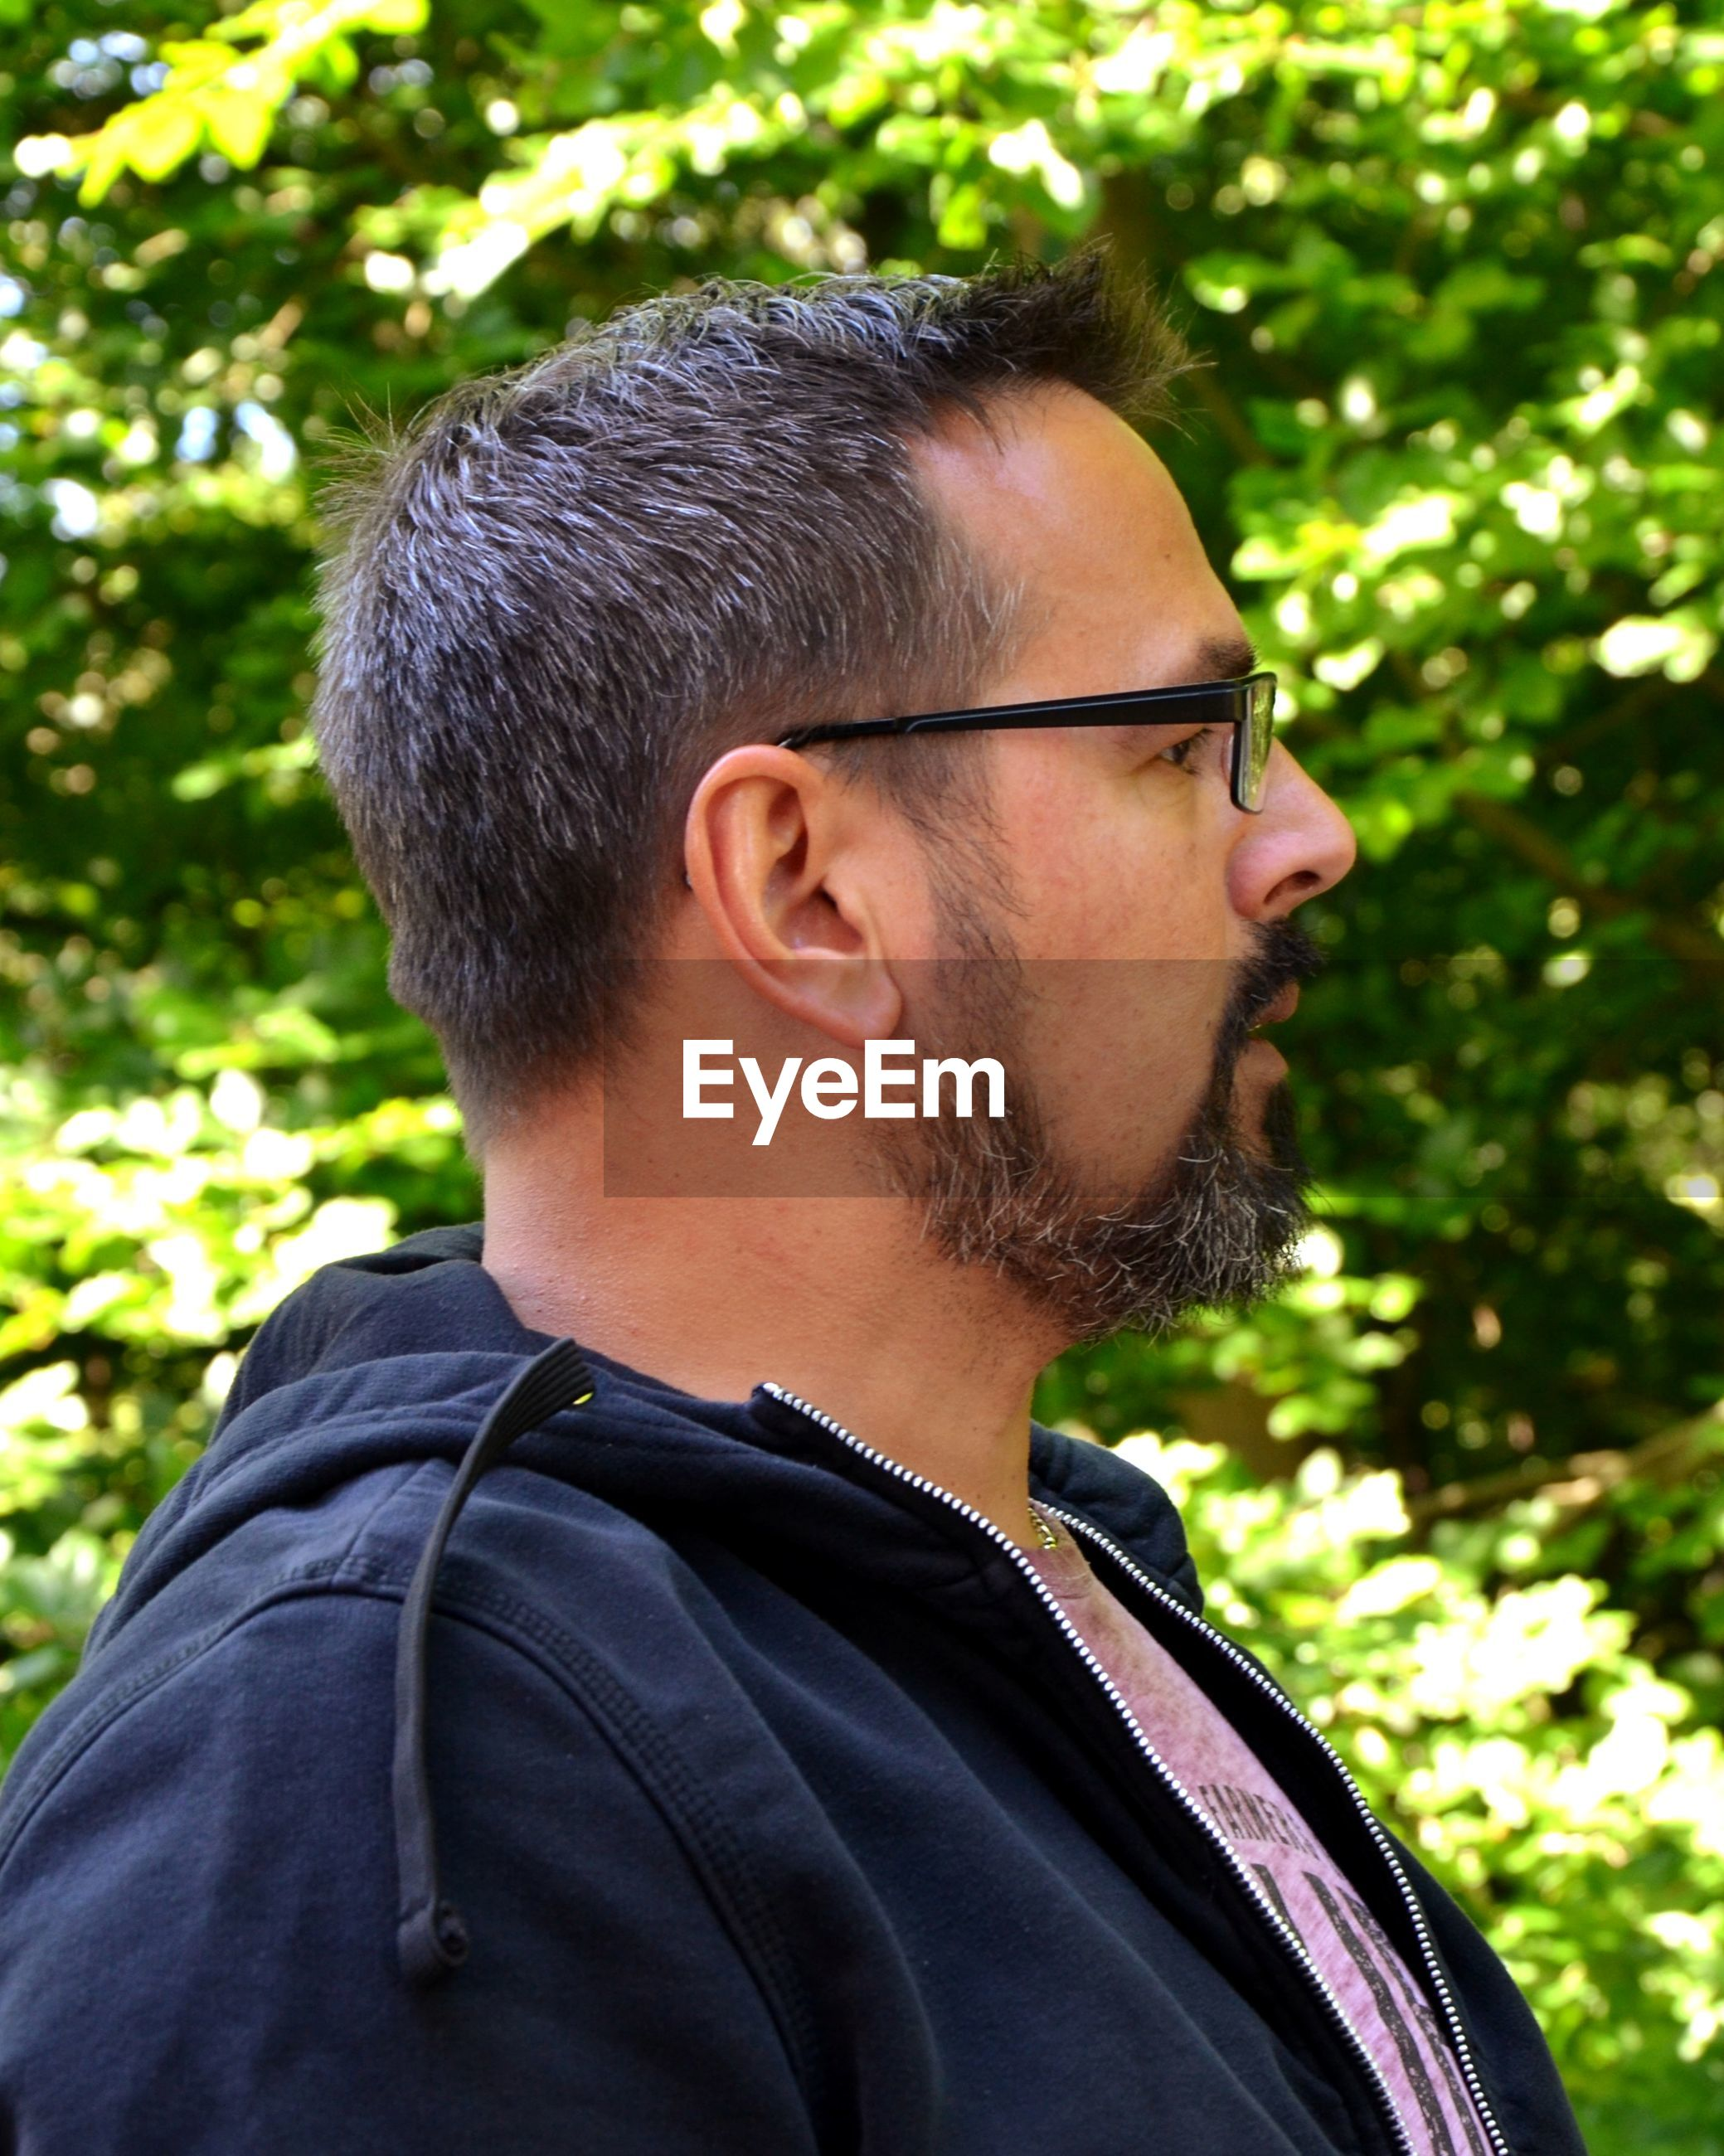 Man wearing eyeglasses looking away against plants